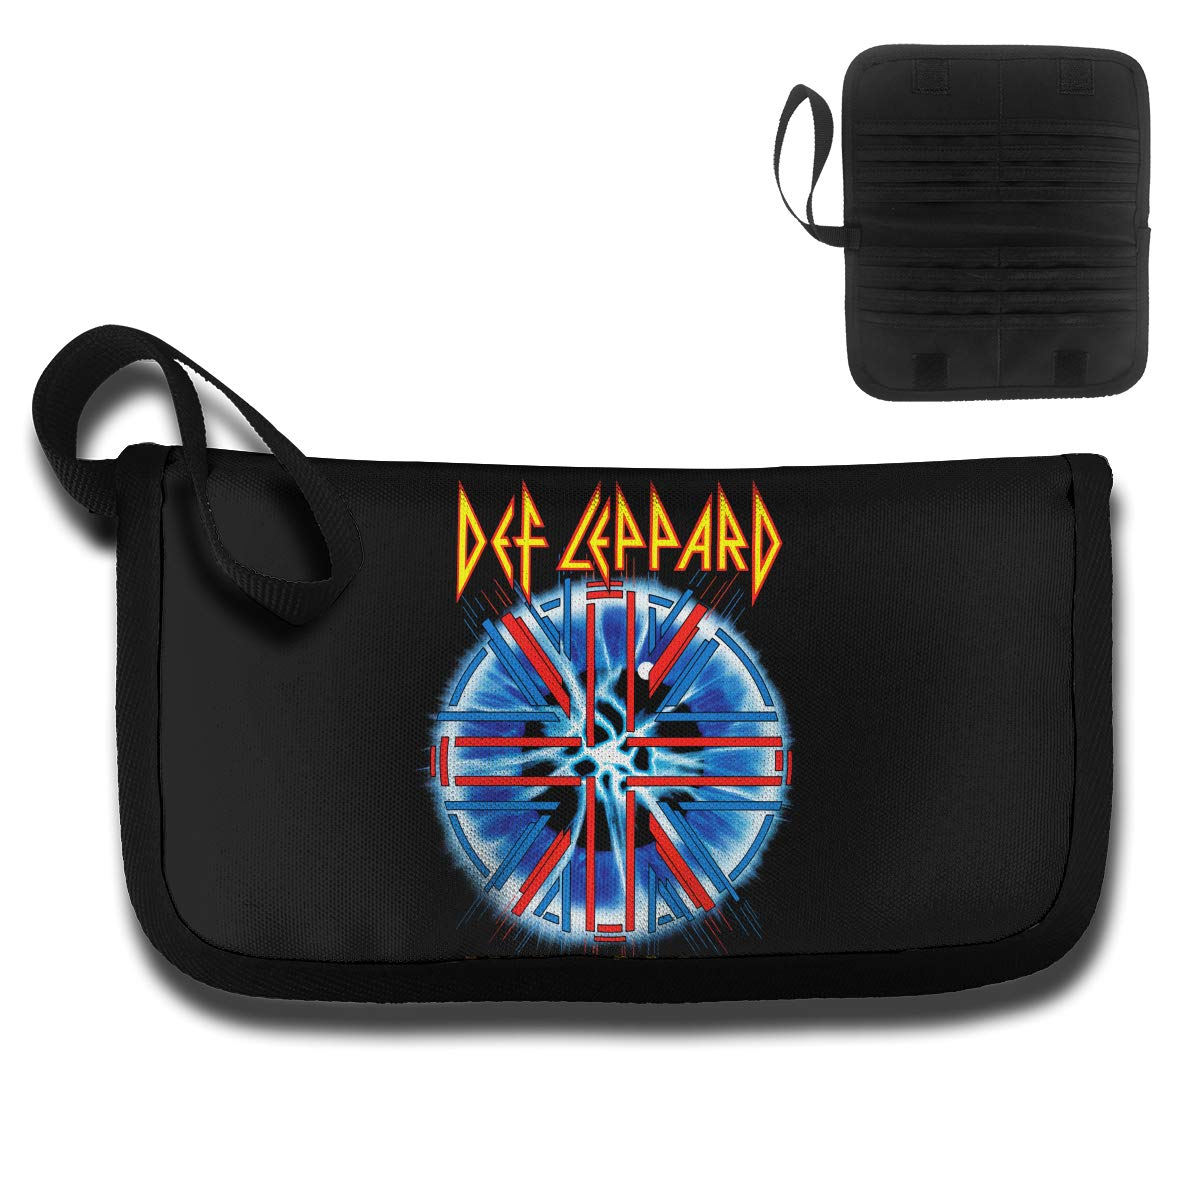 4.6oz KELTY S LANCE Def Leppard Durable Unisex Card Bag,with A Handle,Travel Wallet